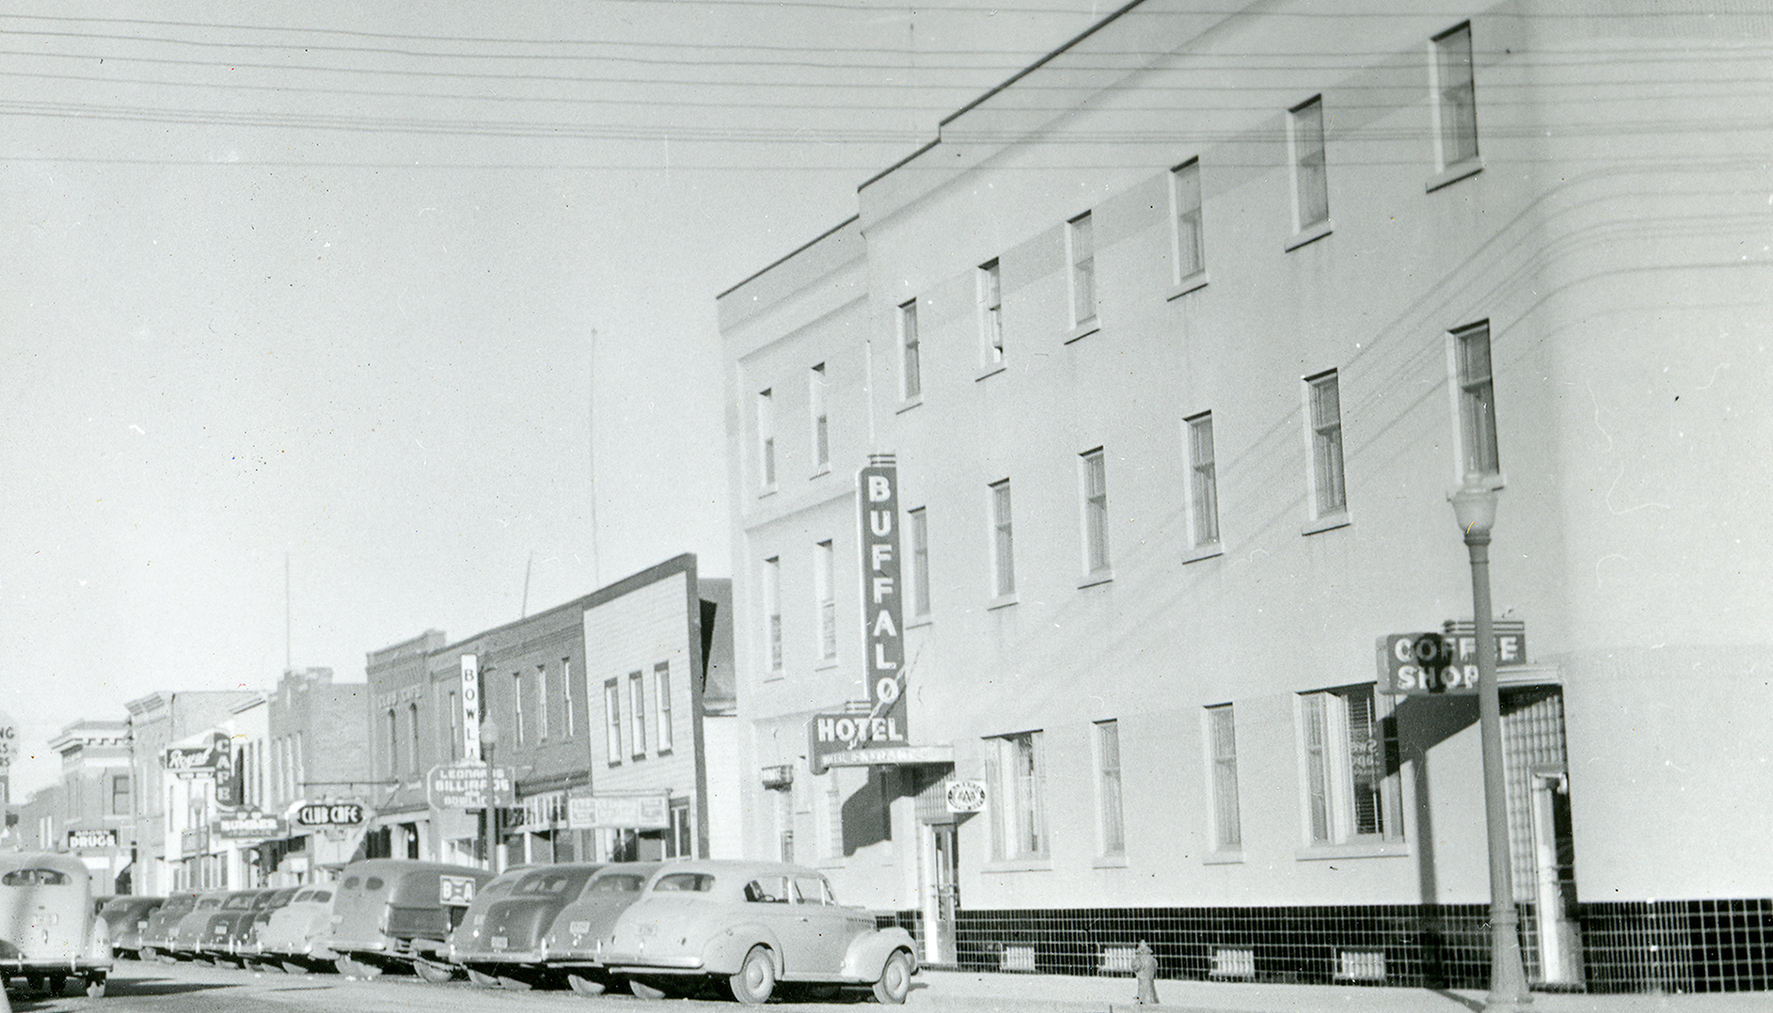 Buffalo Hotel and Cage, 1940